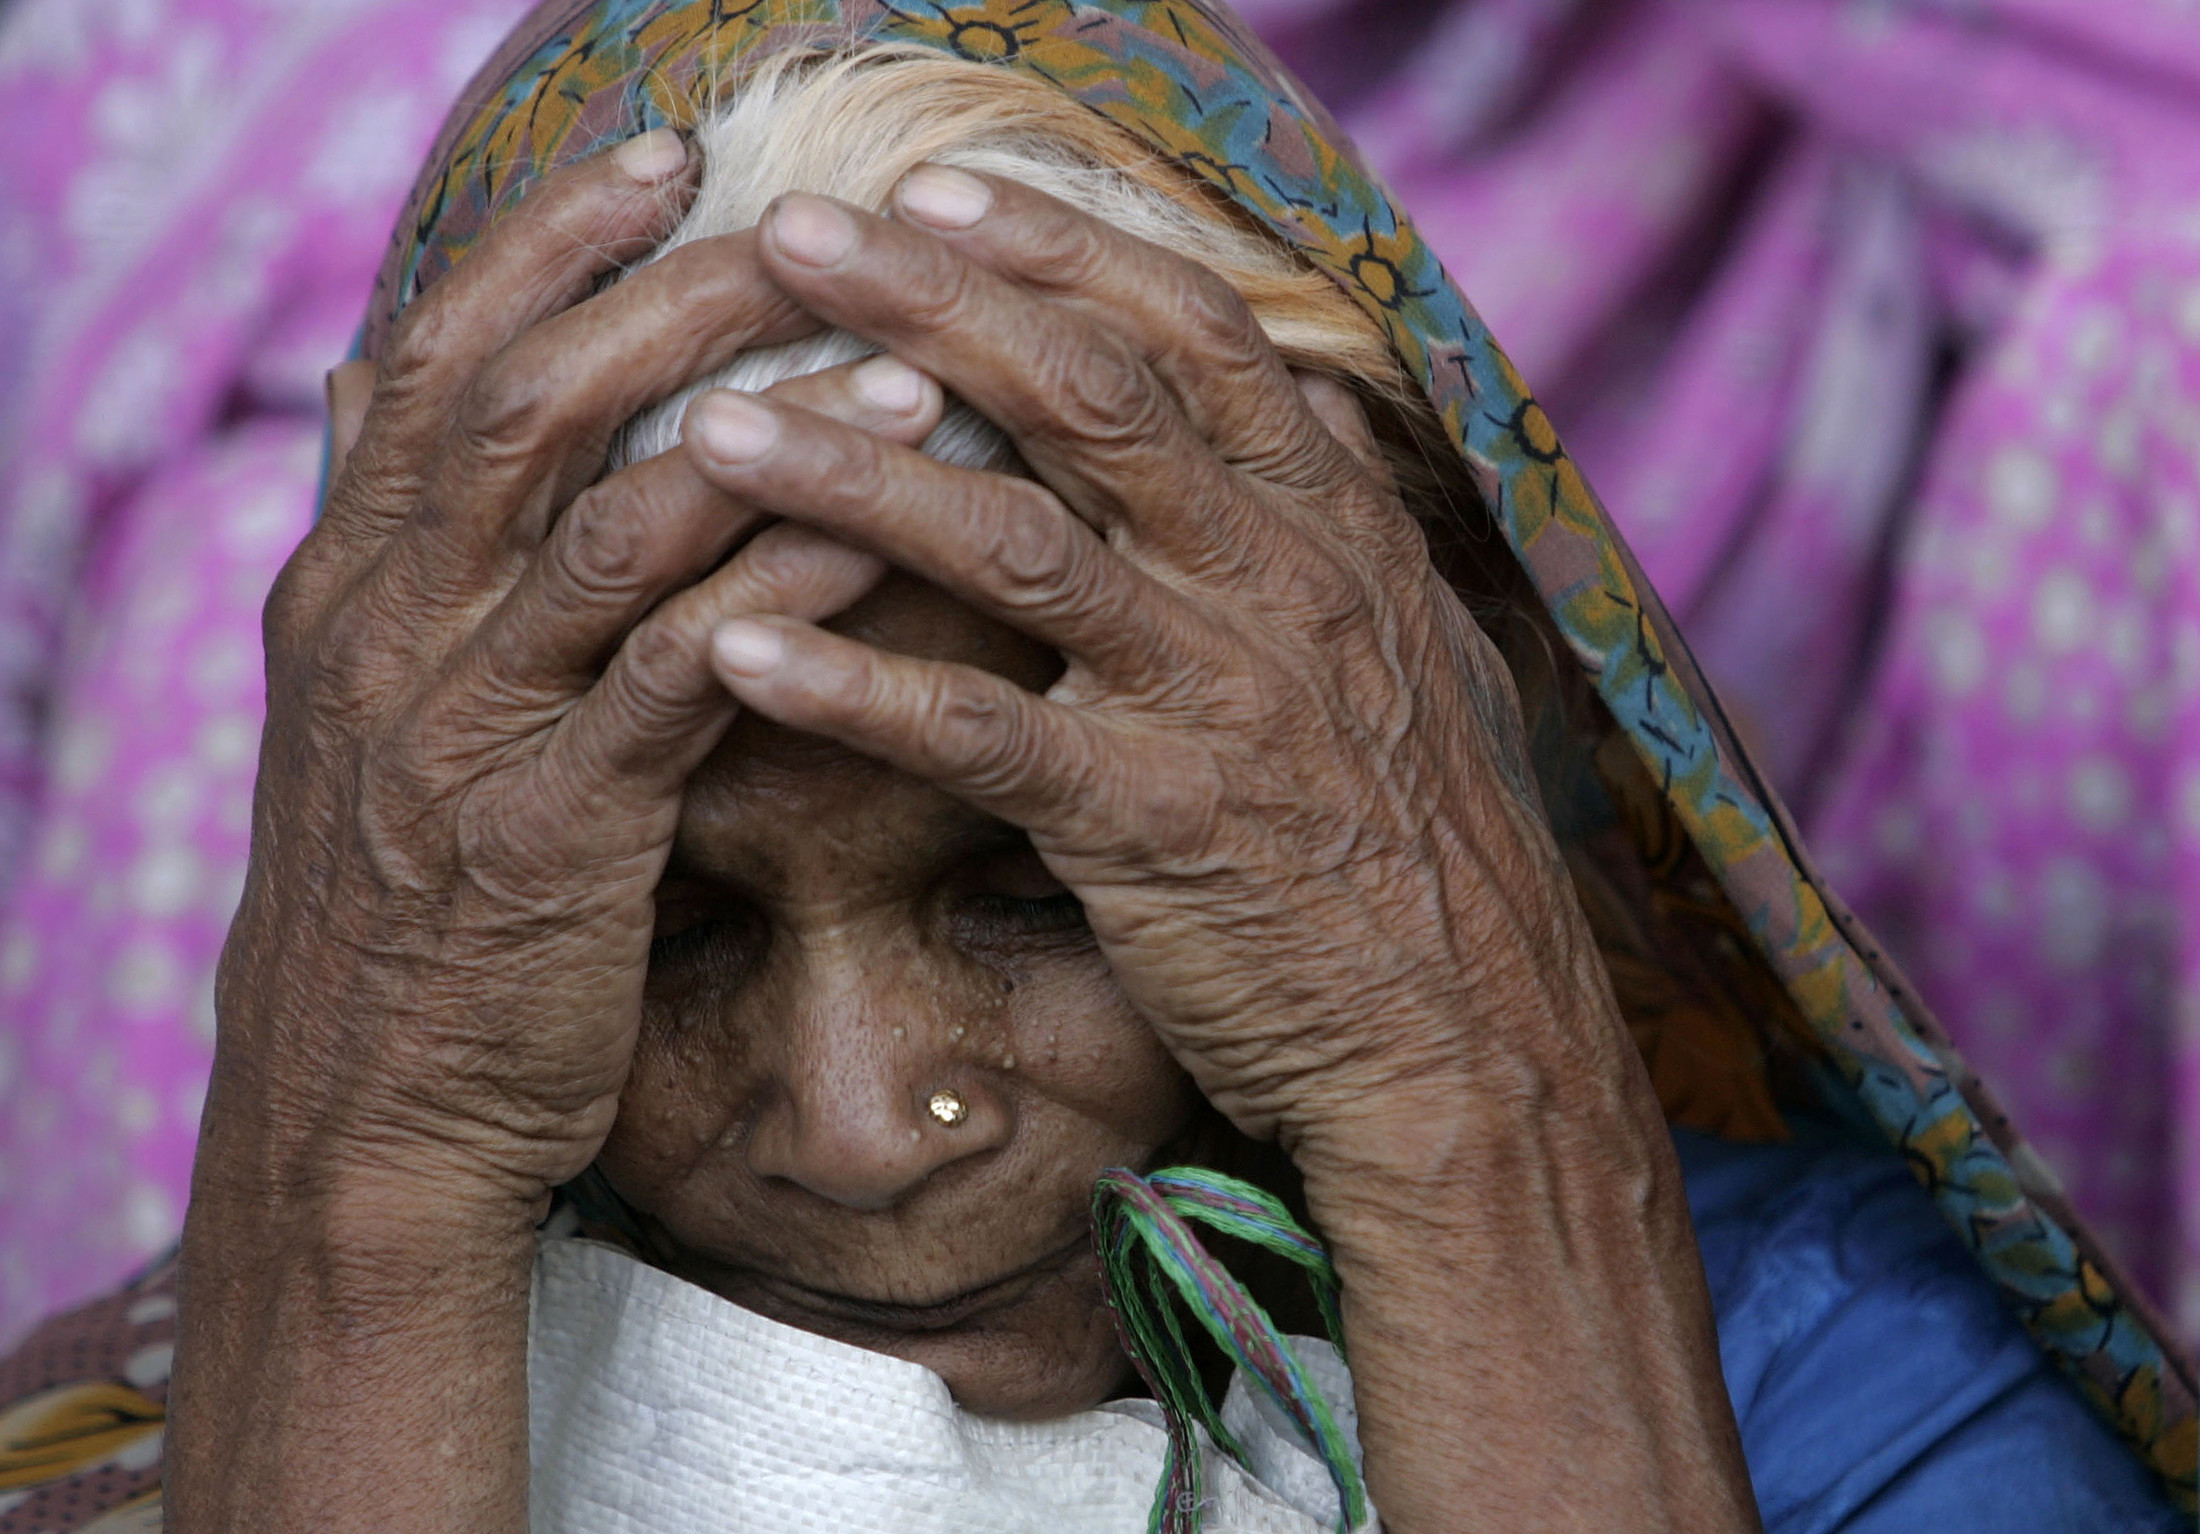 A victim of Bhopal gas tragedy attends a demonstration outside a court in the central Indian city of Bhopal June 7, 2010. An Indian court on Monday sentenced seven people to two years each in prison for negligence in failing to prevent one of the world's worst industrial accidents that killed thousands of people in 1984. REUTERS/Raj Patidar